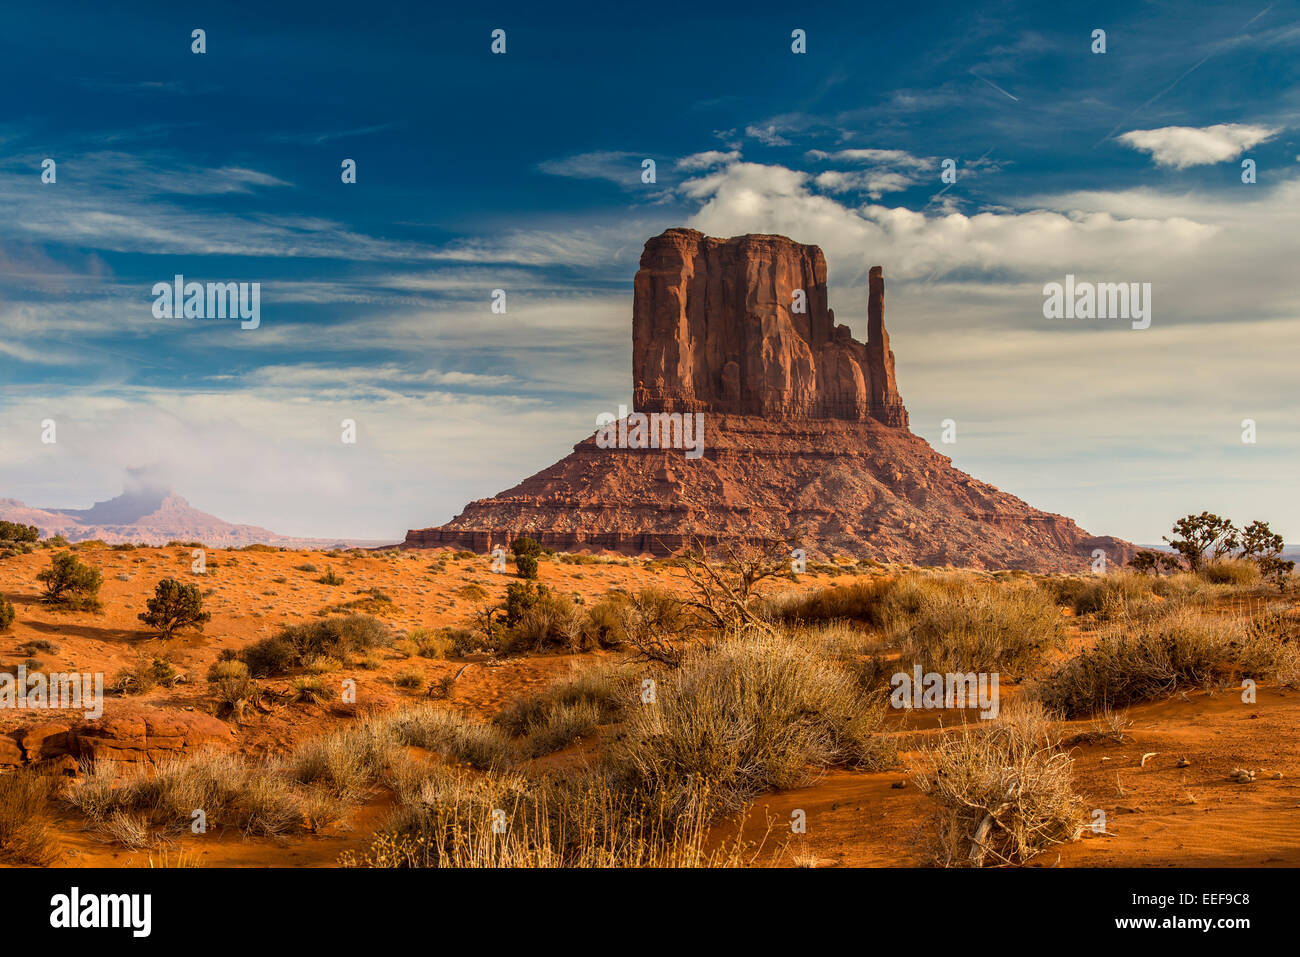 West Mitten Butte, Monument Valley Navajo Tribal Park, Arizona, USA - Stock Image